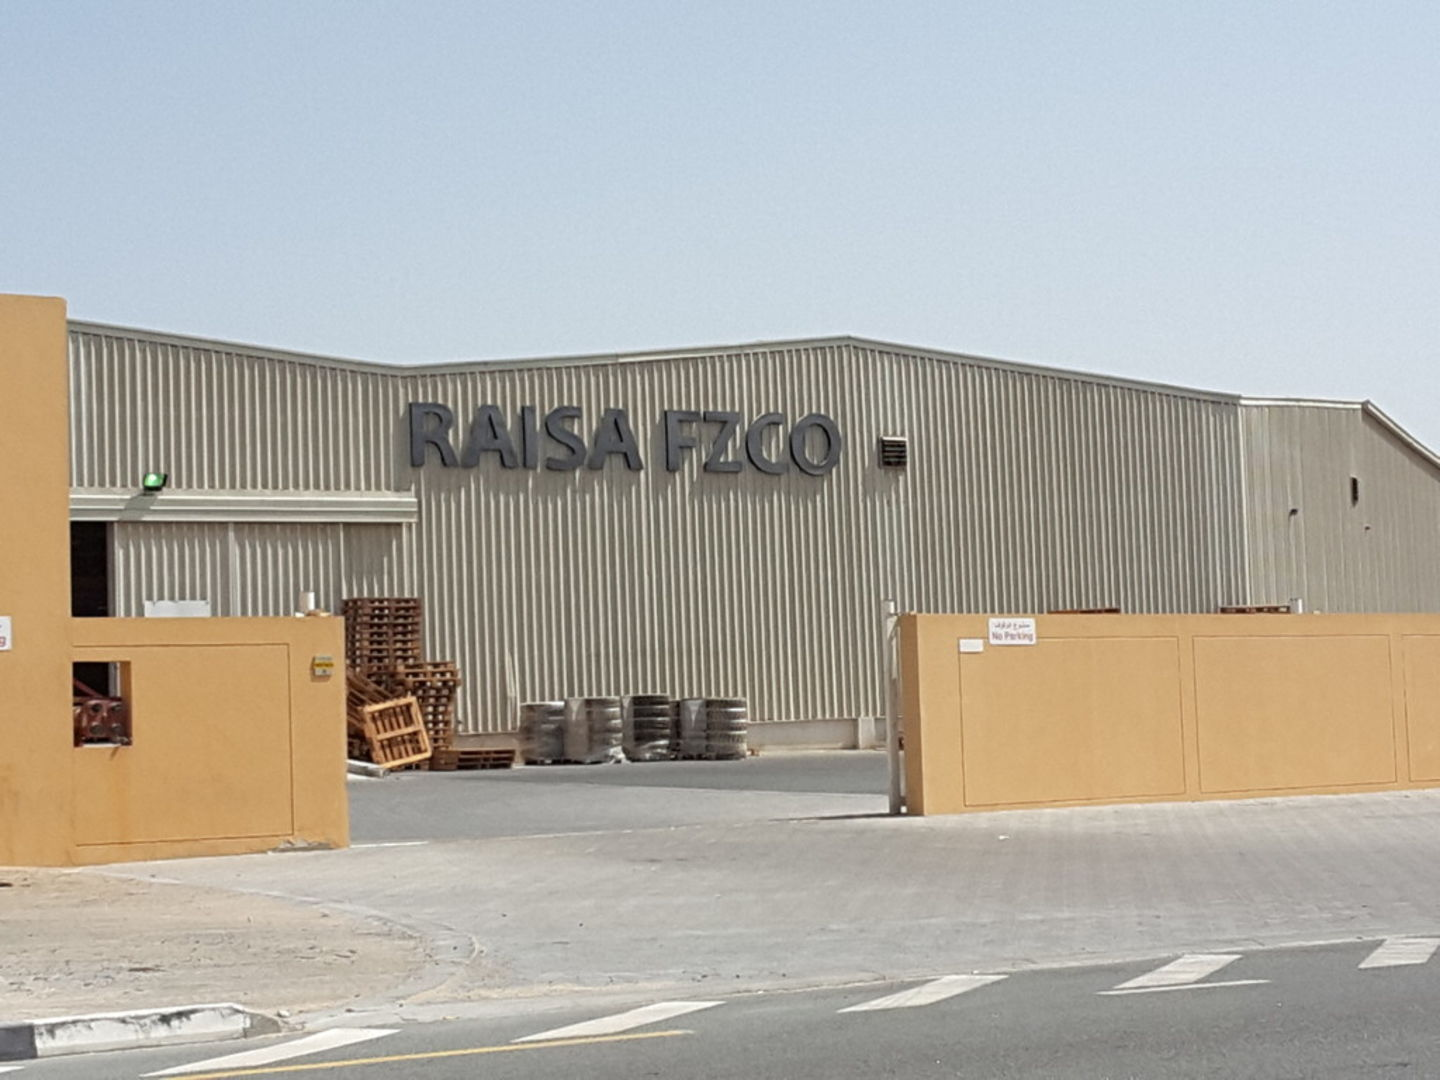 HiDubai-business-raisa-fzco-shipping-logistics-road-cargo-services-jebel-ali-industrial-2-dubai-2